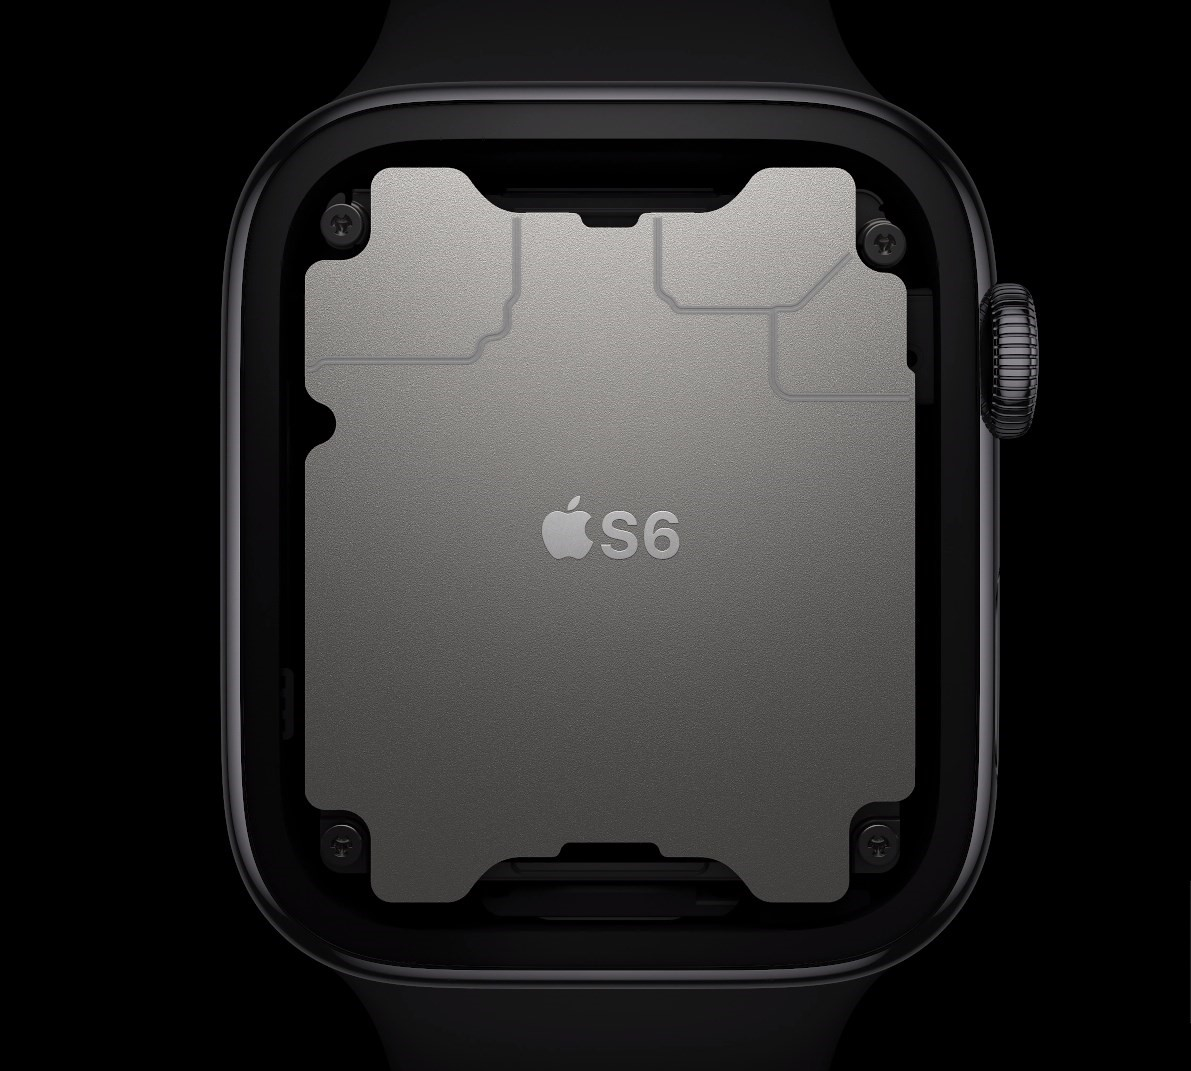 S6 chip Apple Watch 6